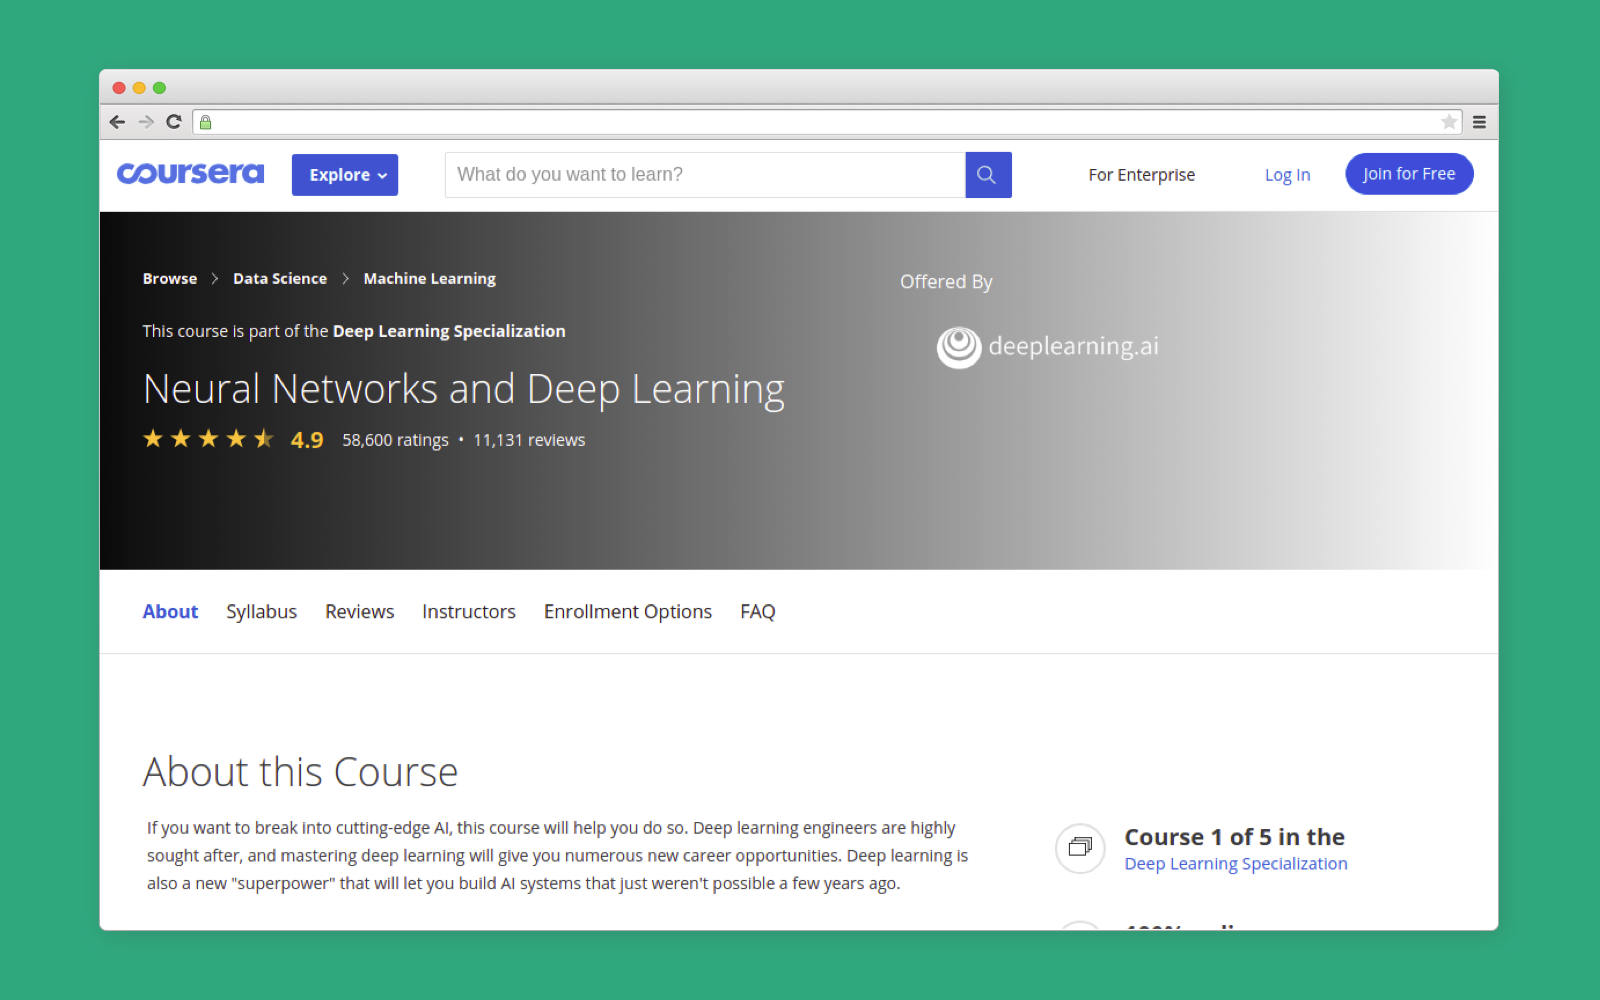 Want to Make An eLearning Platform Like Coursera or Udemy? Here's How to Start